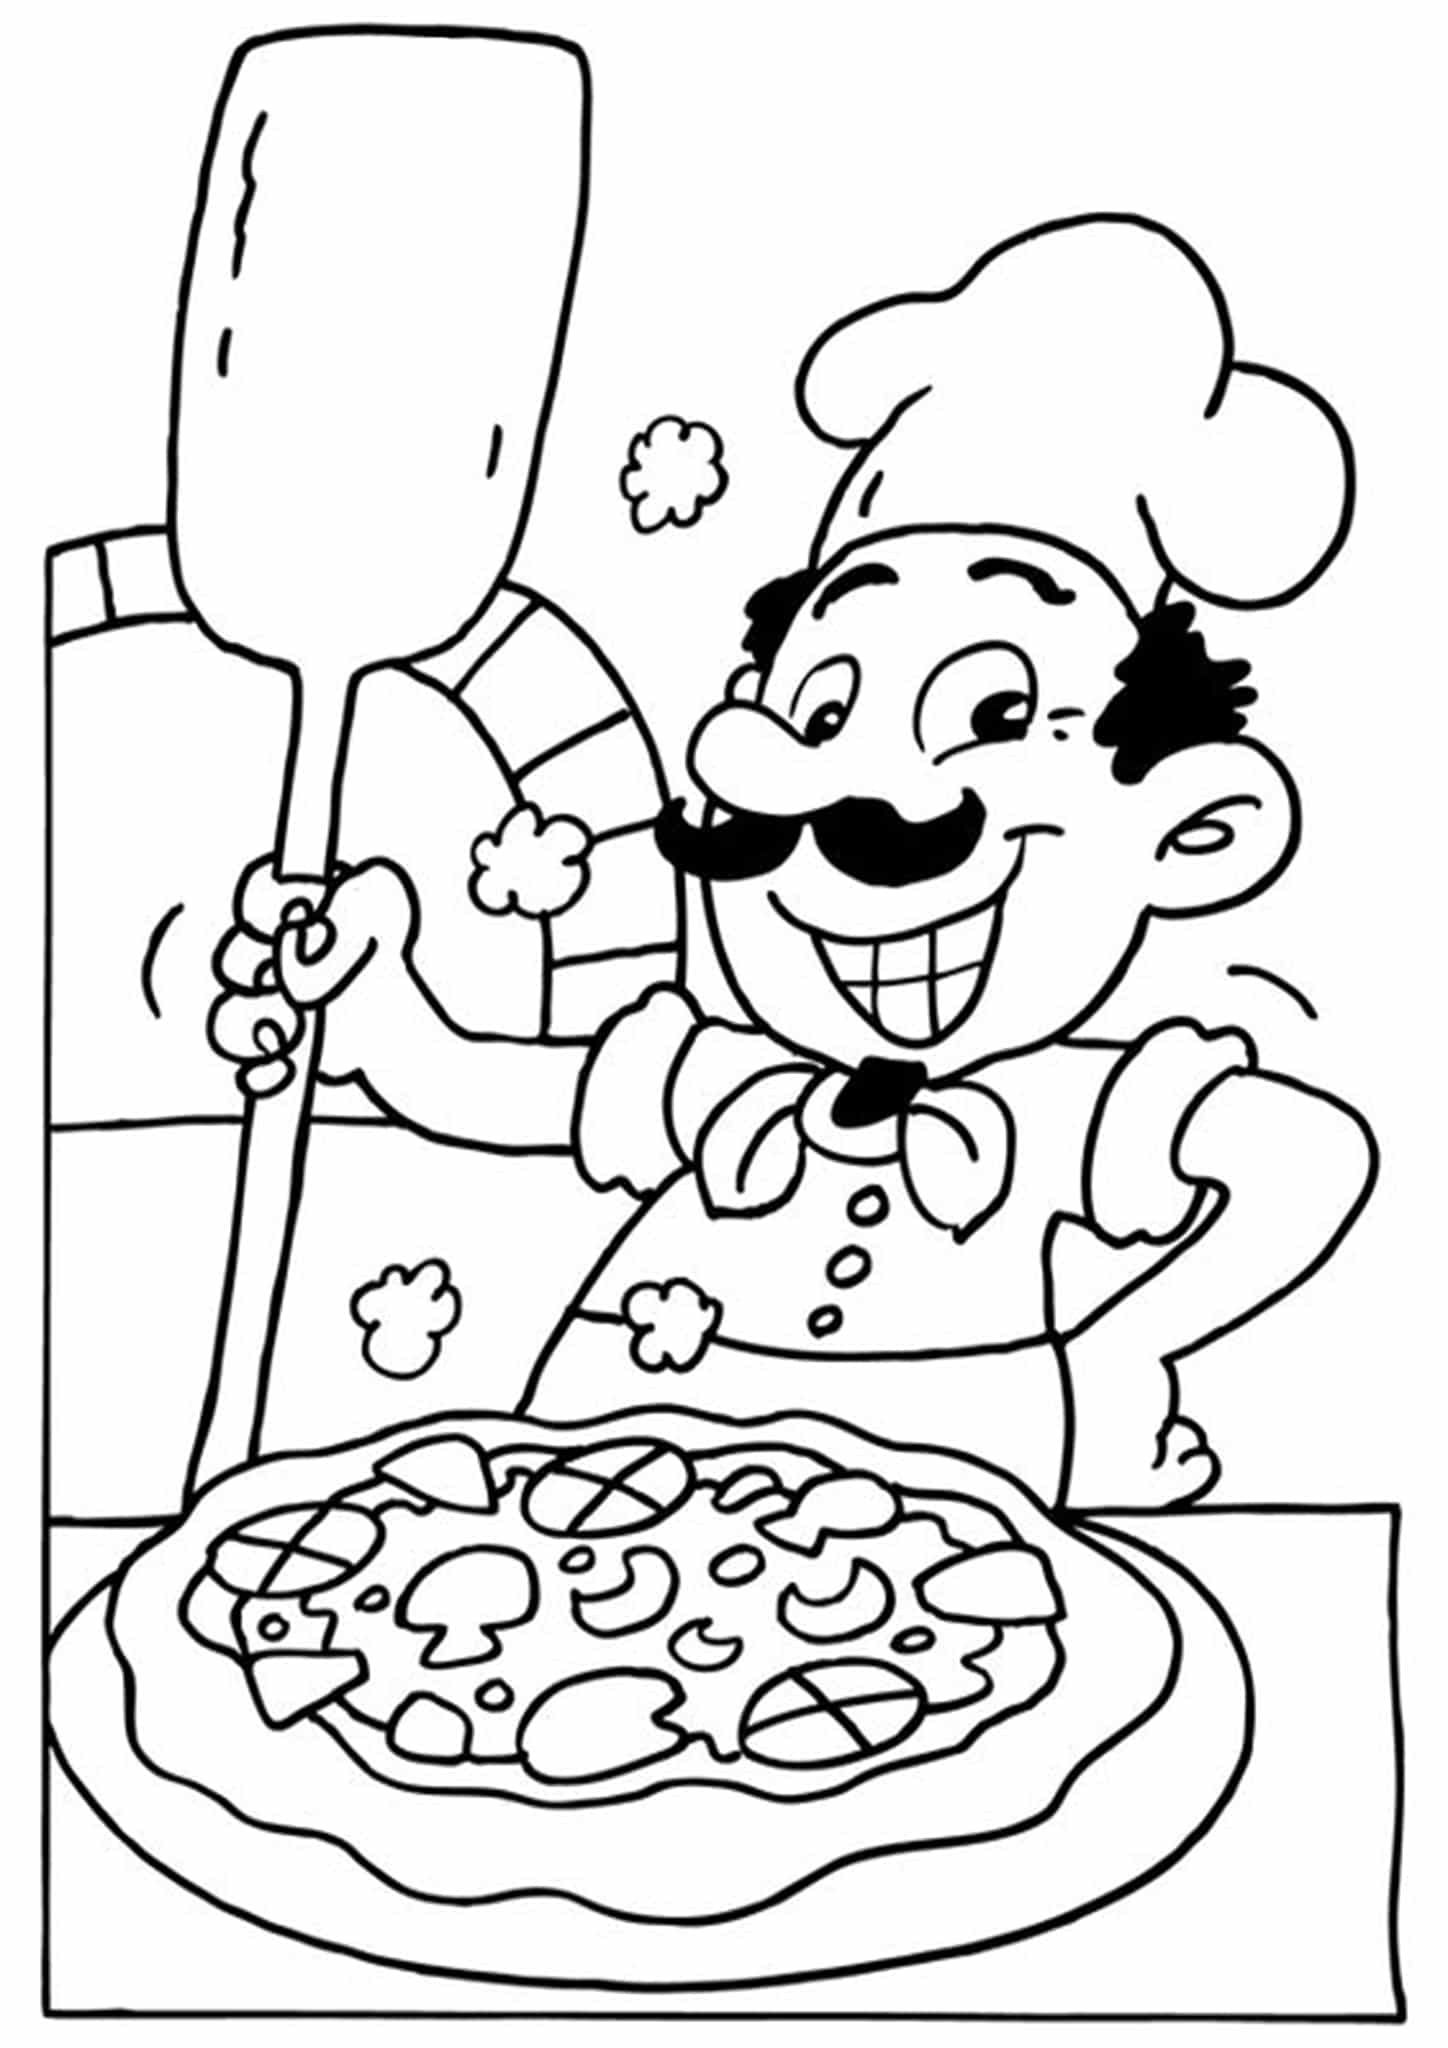 Free Easy To Print Pizza Coloring Pages In 2021 Pizza Restaurant Pizza Coloring Page Coloring Pages